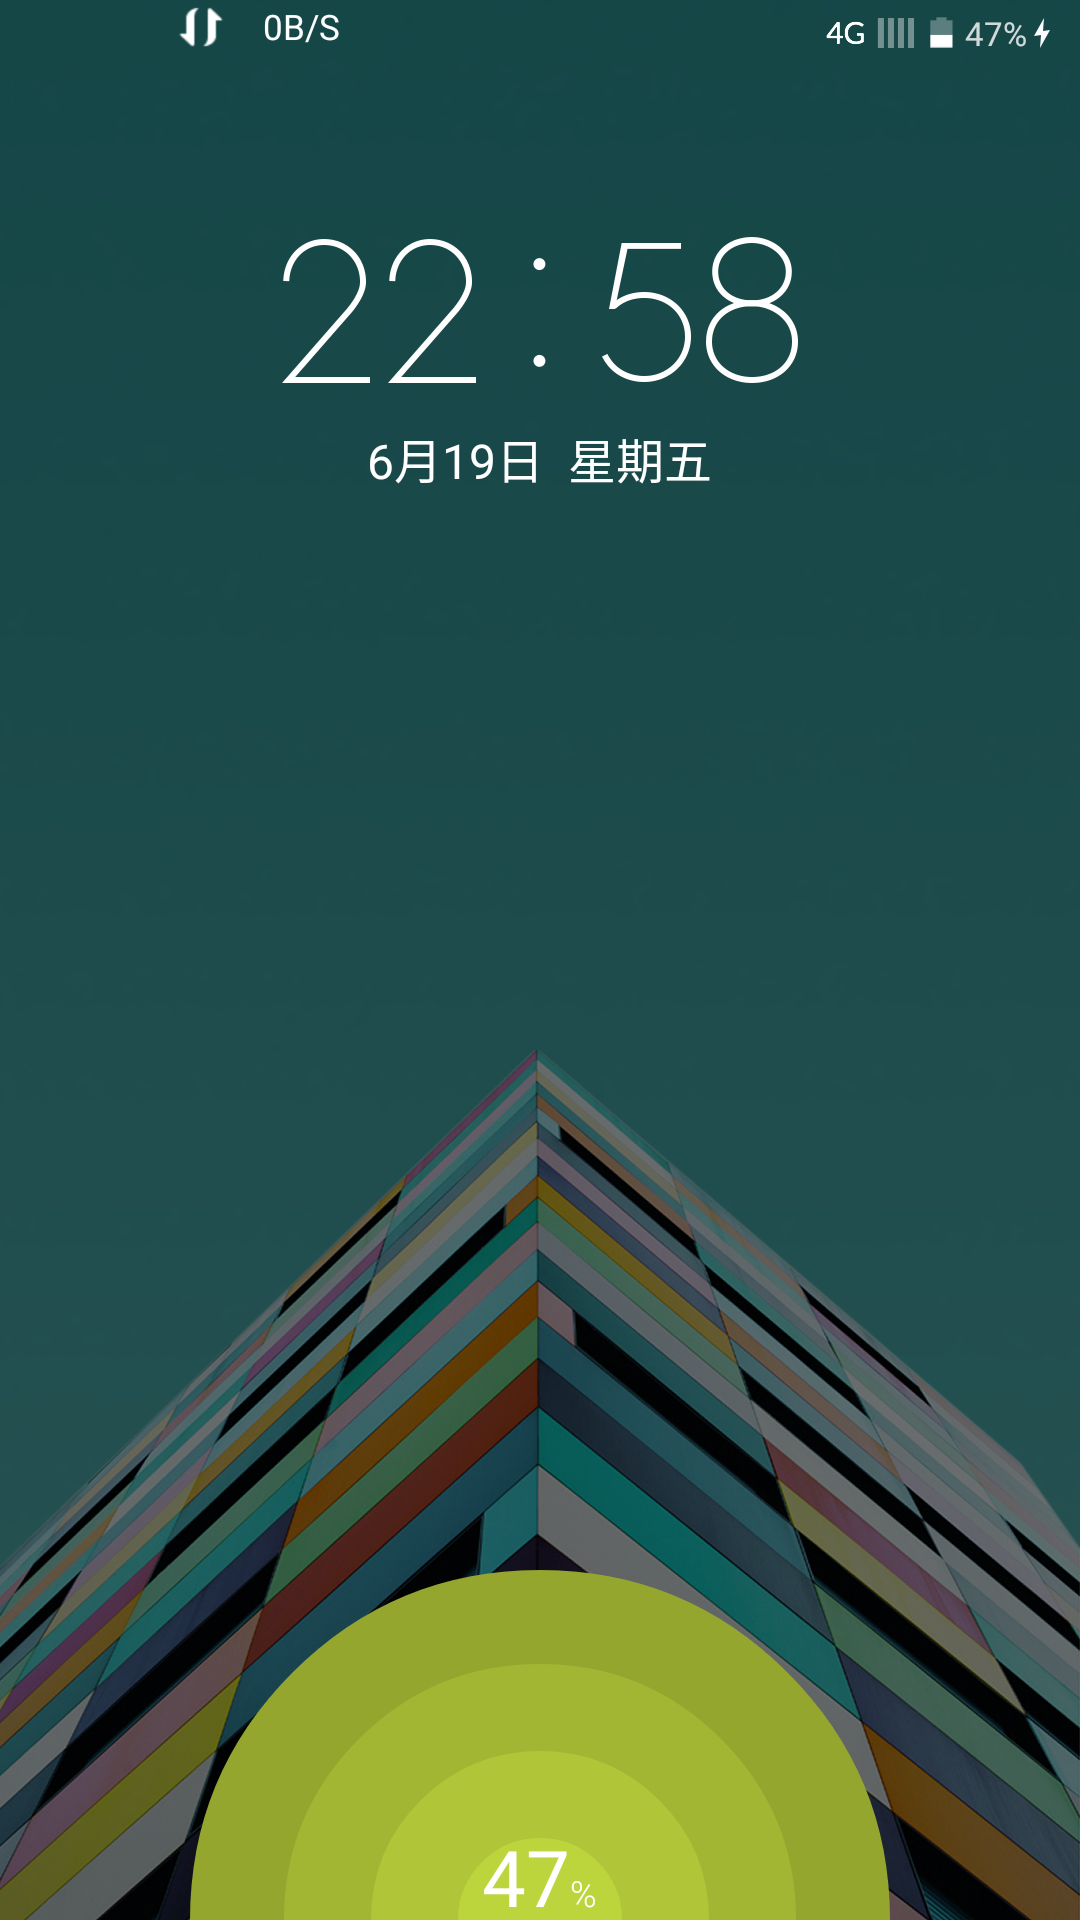 Screenshot_2015-06-19-22-58-11.png